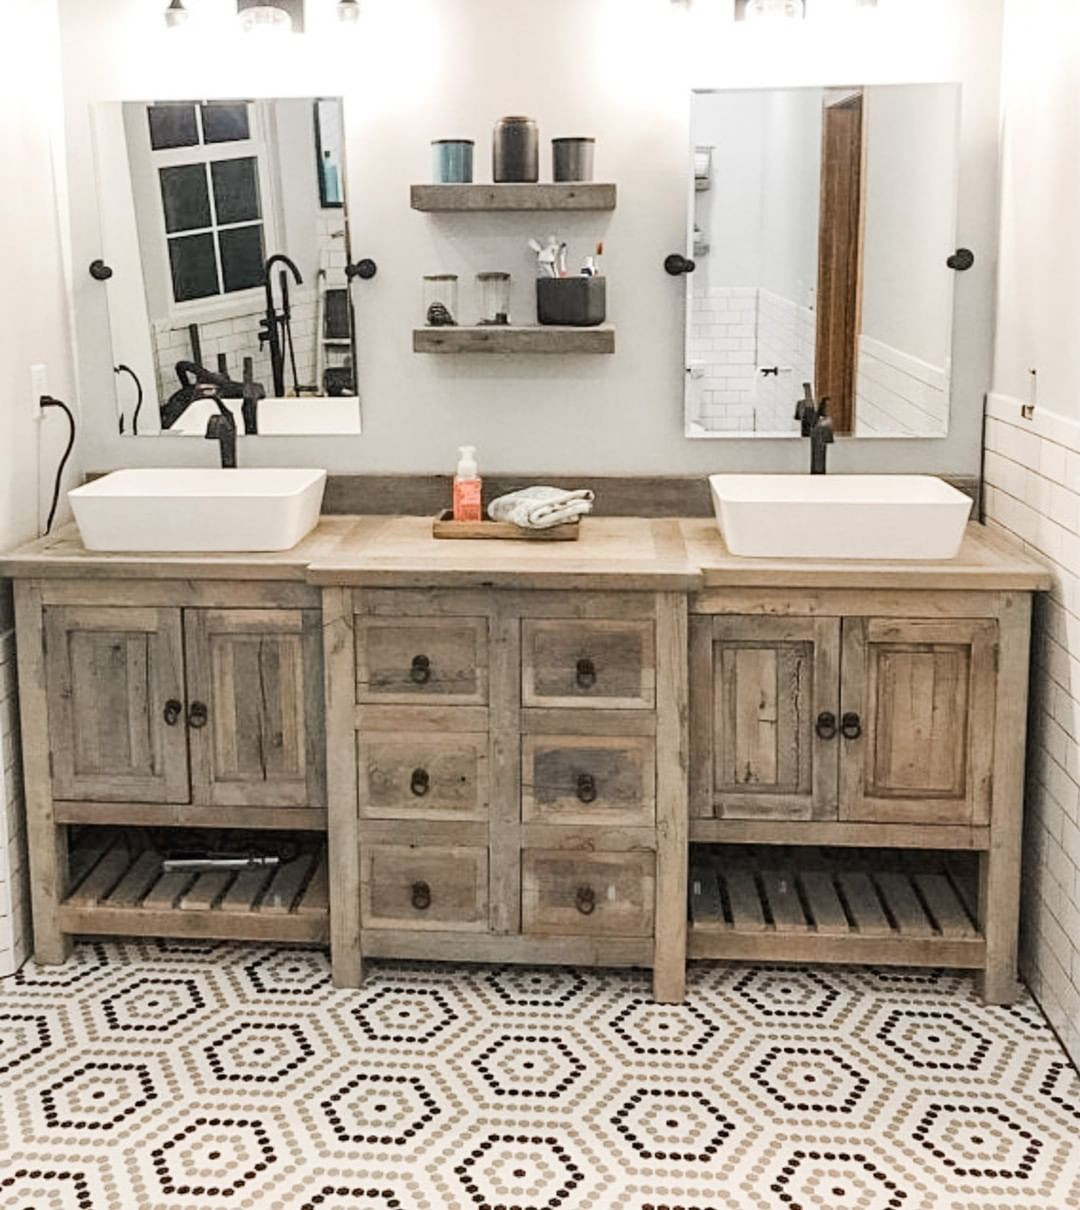 52 Rustic Bathrooms That Will Inspire Your Next Makeover